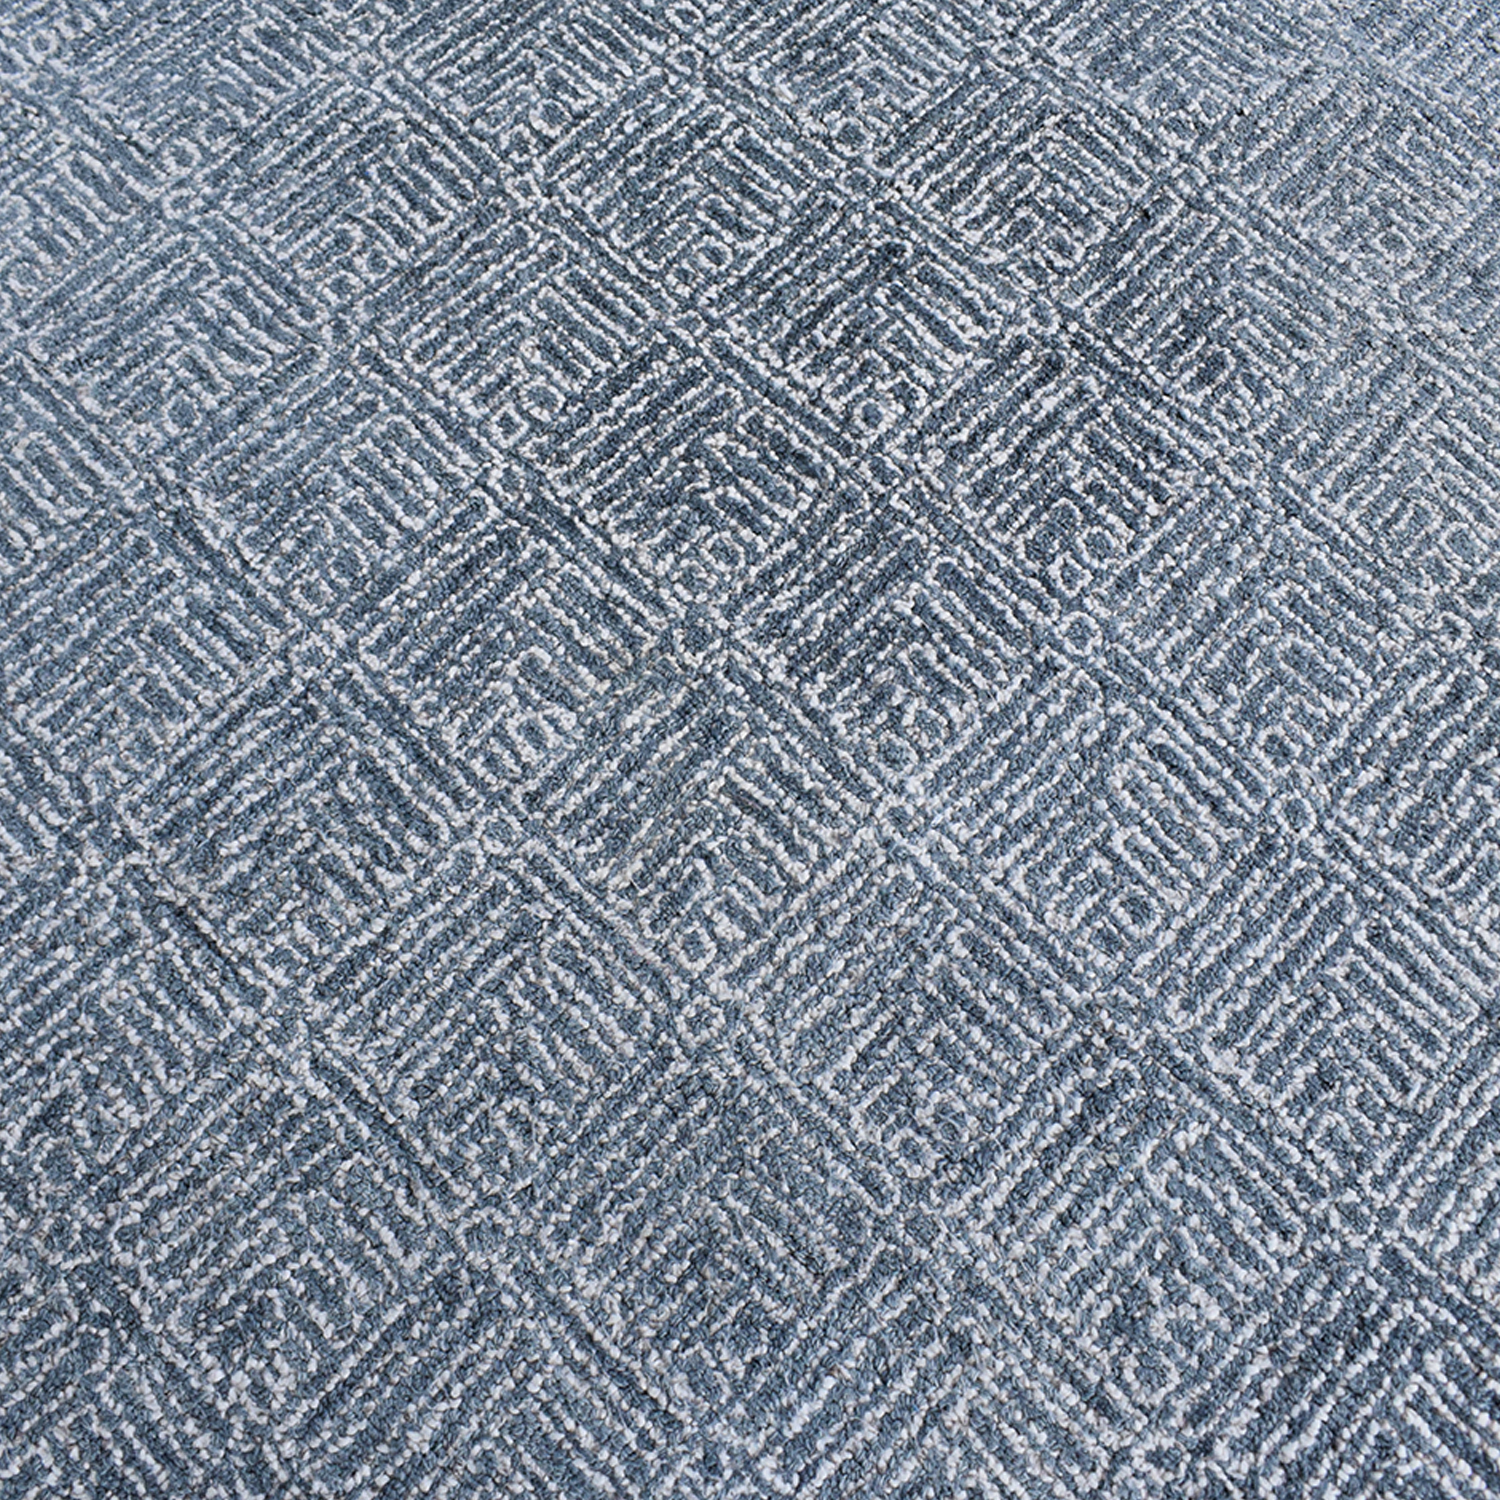 Crate & Barrel Crate & Barrel Curtis Indigo Wool-Blend Rug nj